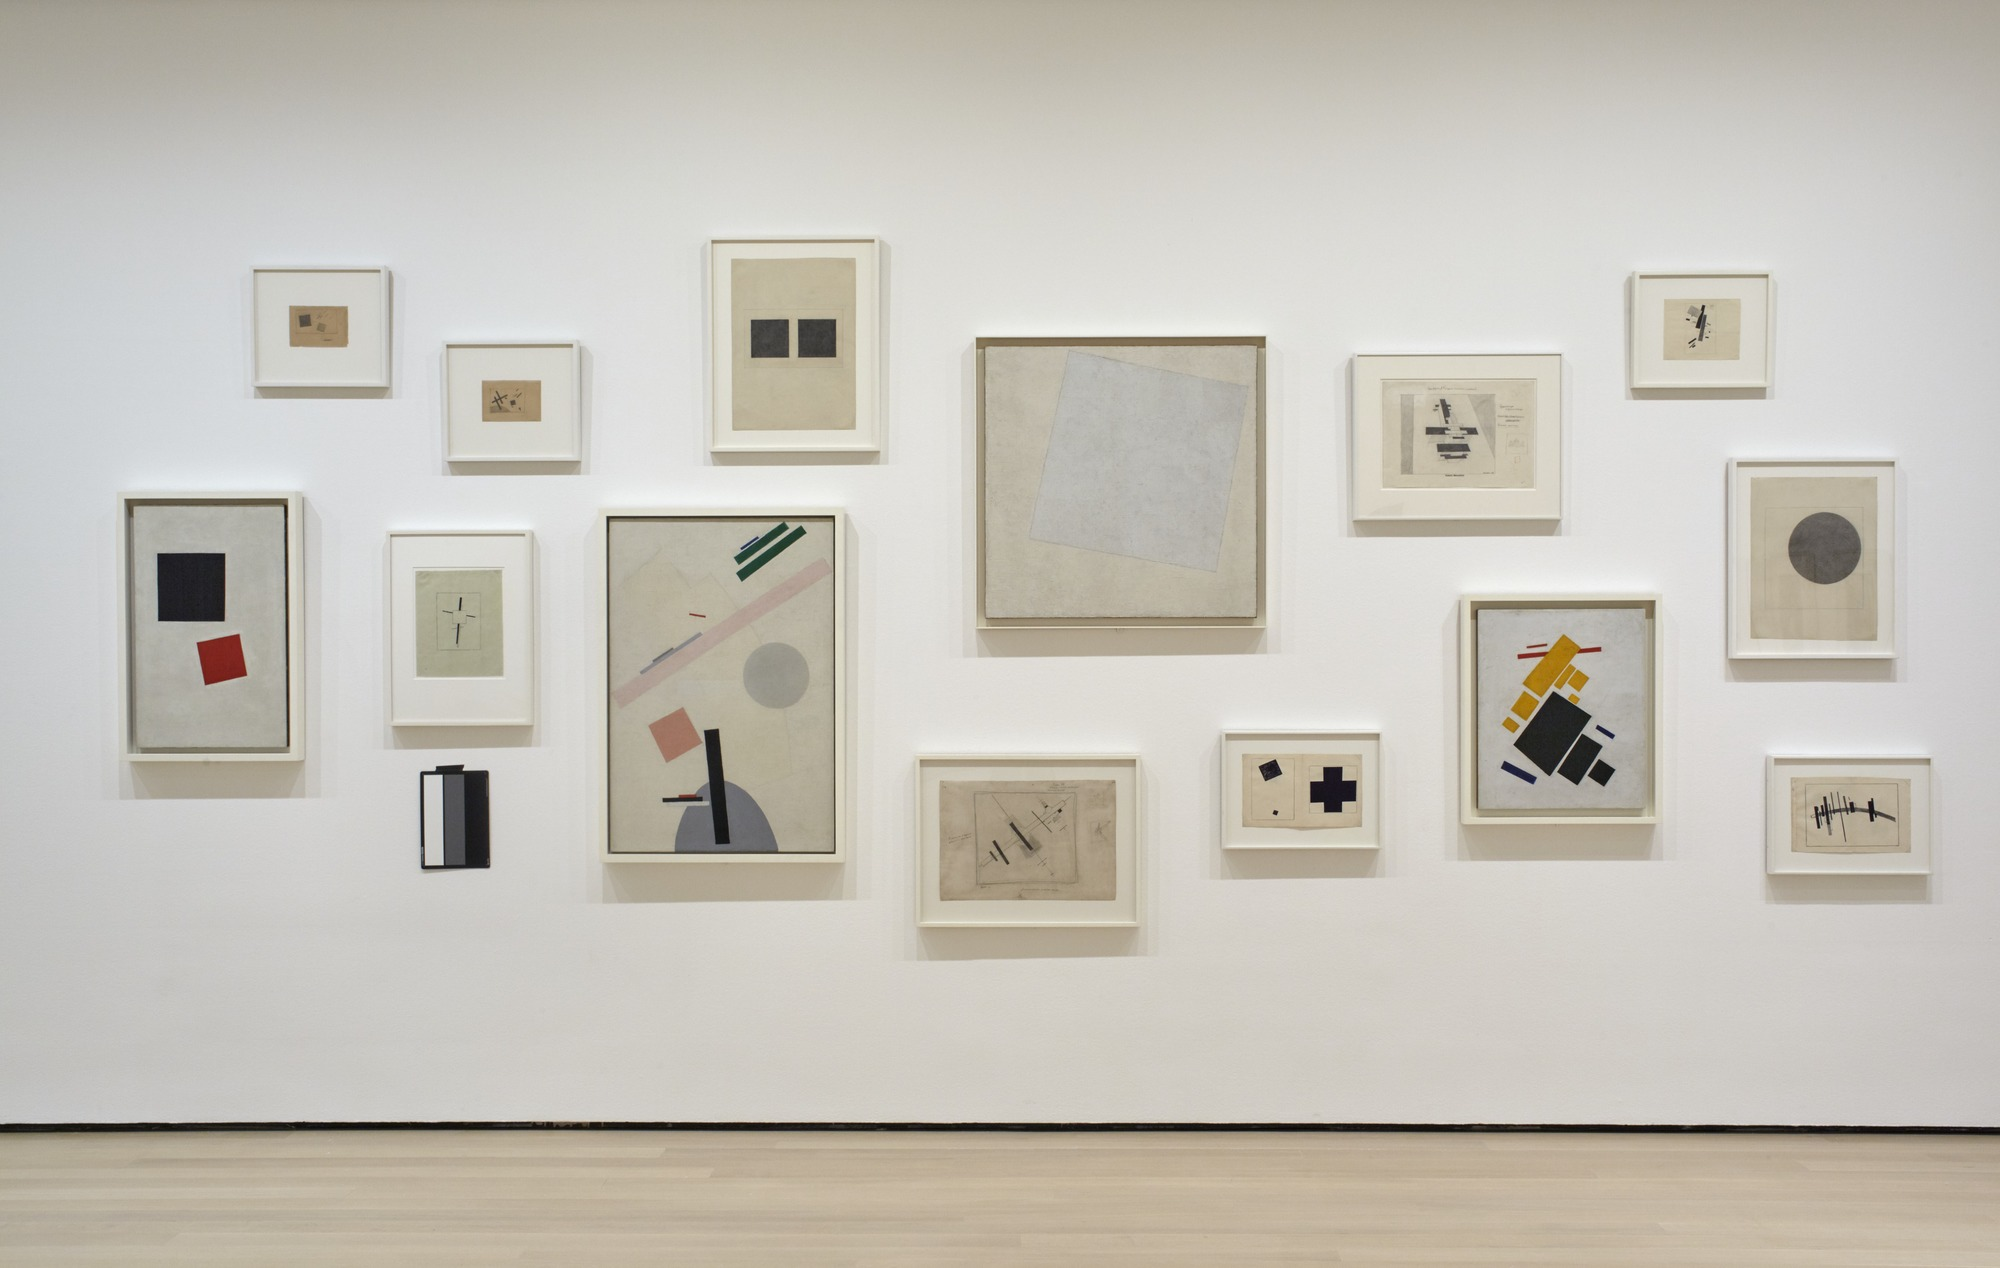 Works by Malevich. Image courtesy of MoMA.